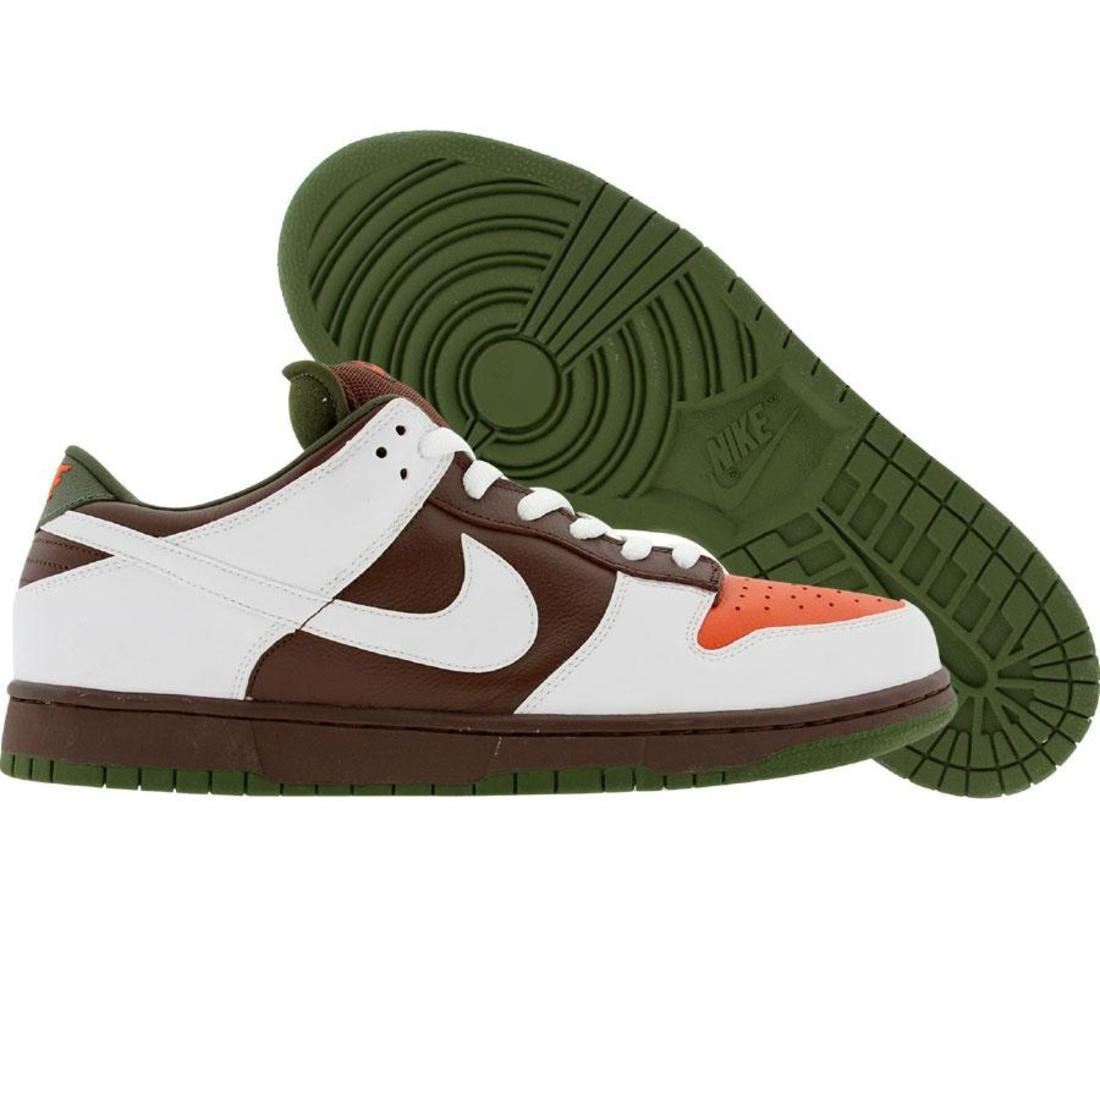 size 40 5197c cfe41 Amazon.com Nike DUNK LOW PRO SB OOMPA LOOMPA Sz 13.0 Shoes